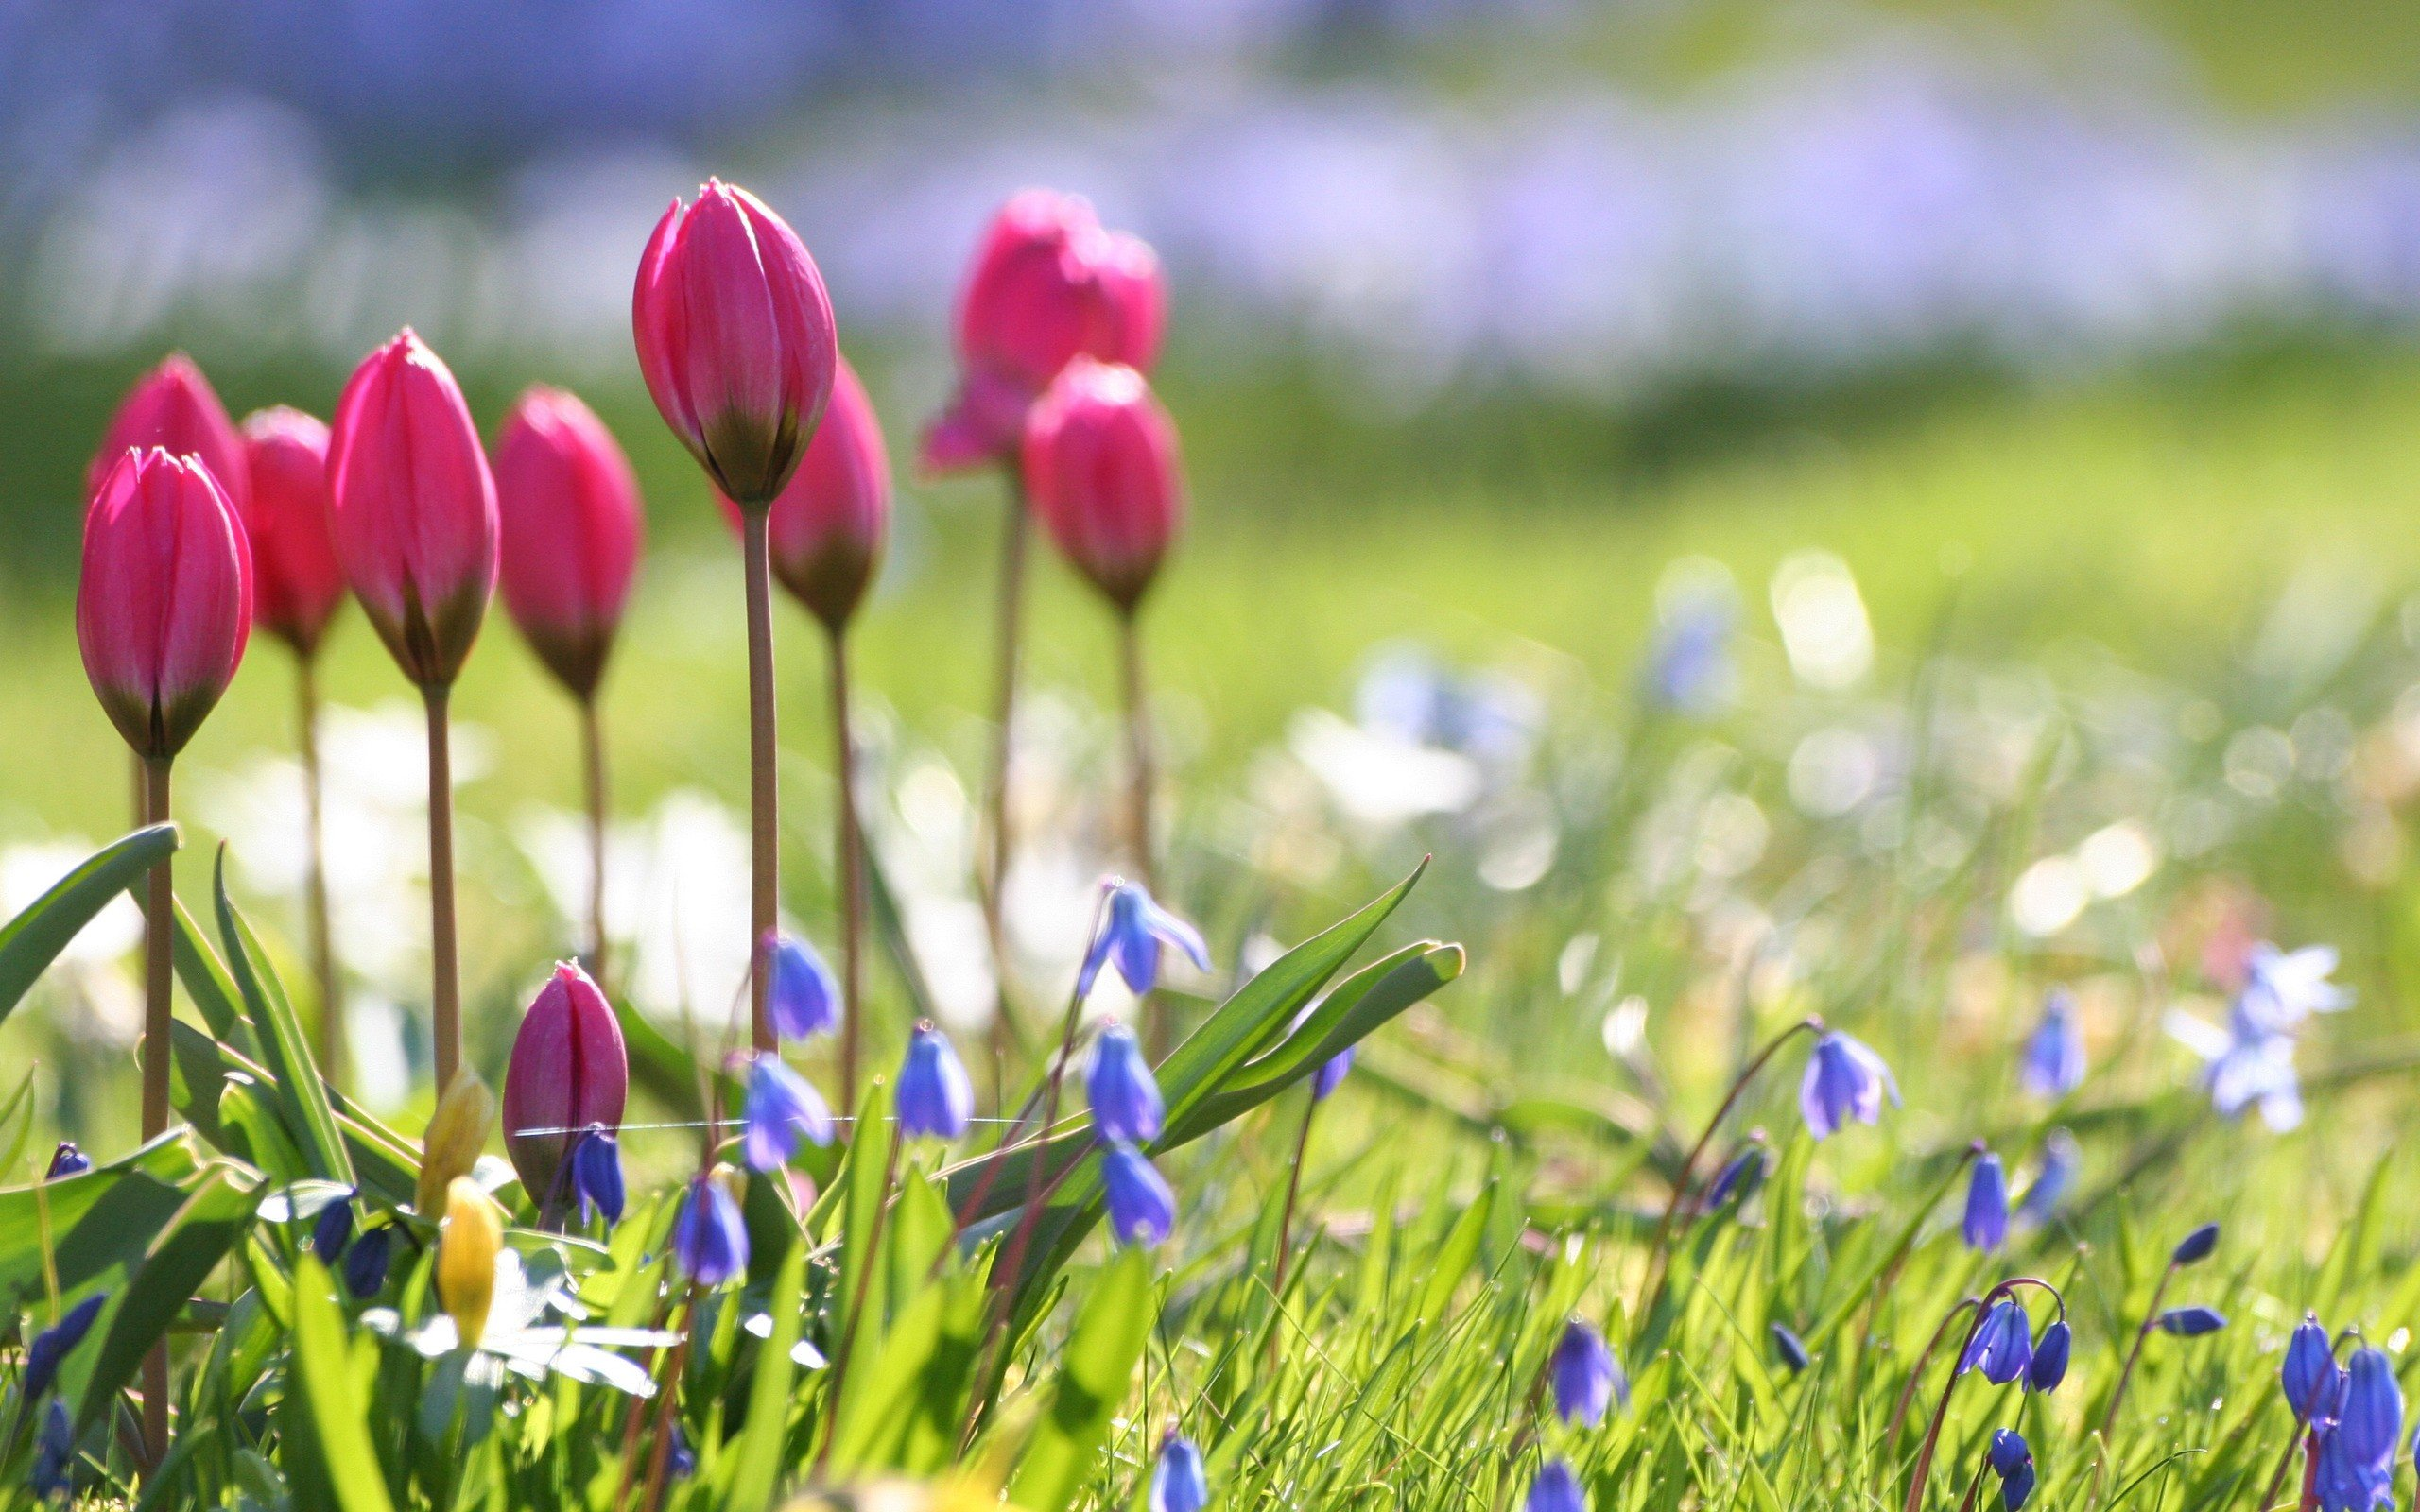 Images Wallpapers of Spring Flowers in HD Quality BsnSCBcom 2560x1600